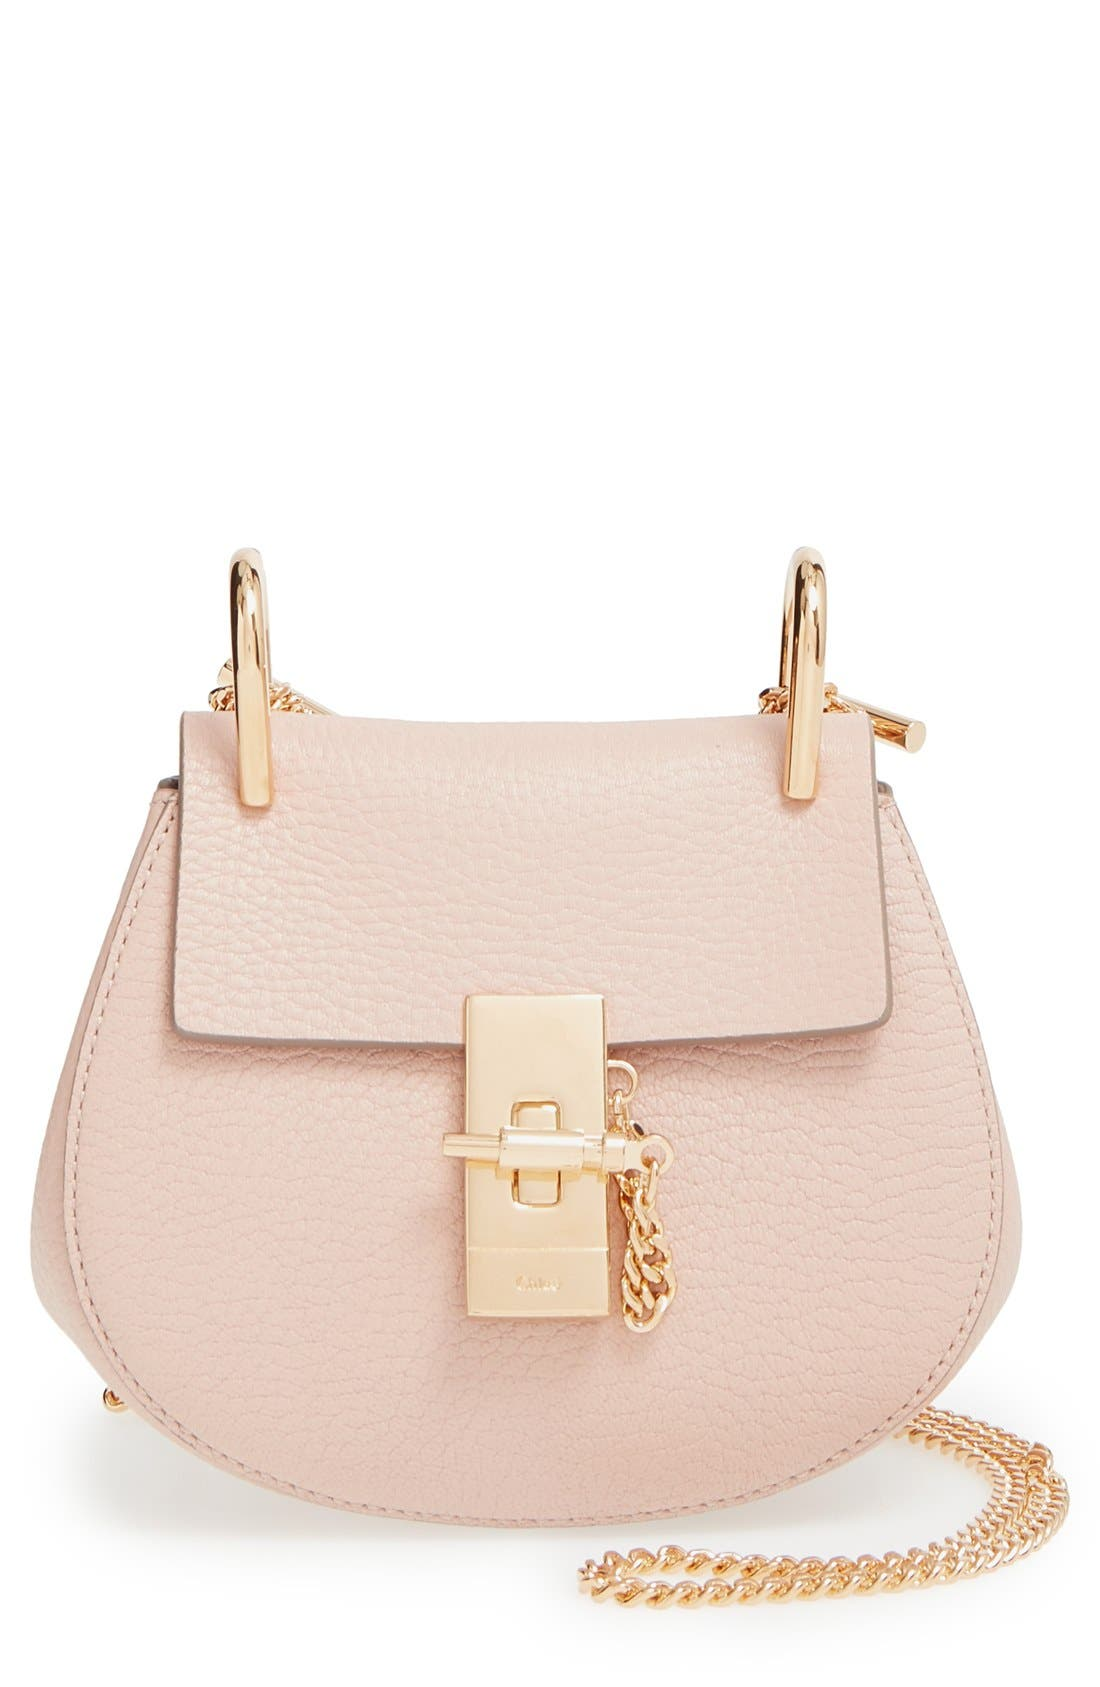 Main Image - Chloé 'Nano Drew' Lambskin Leather Shoulder Bag